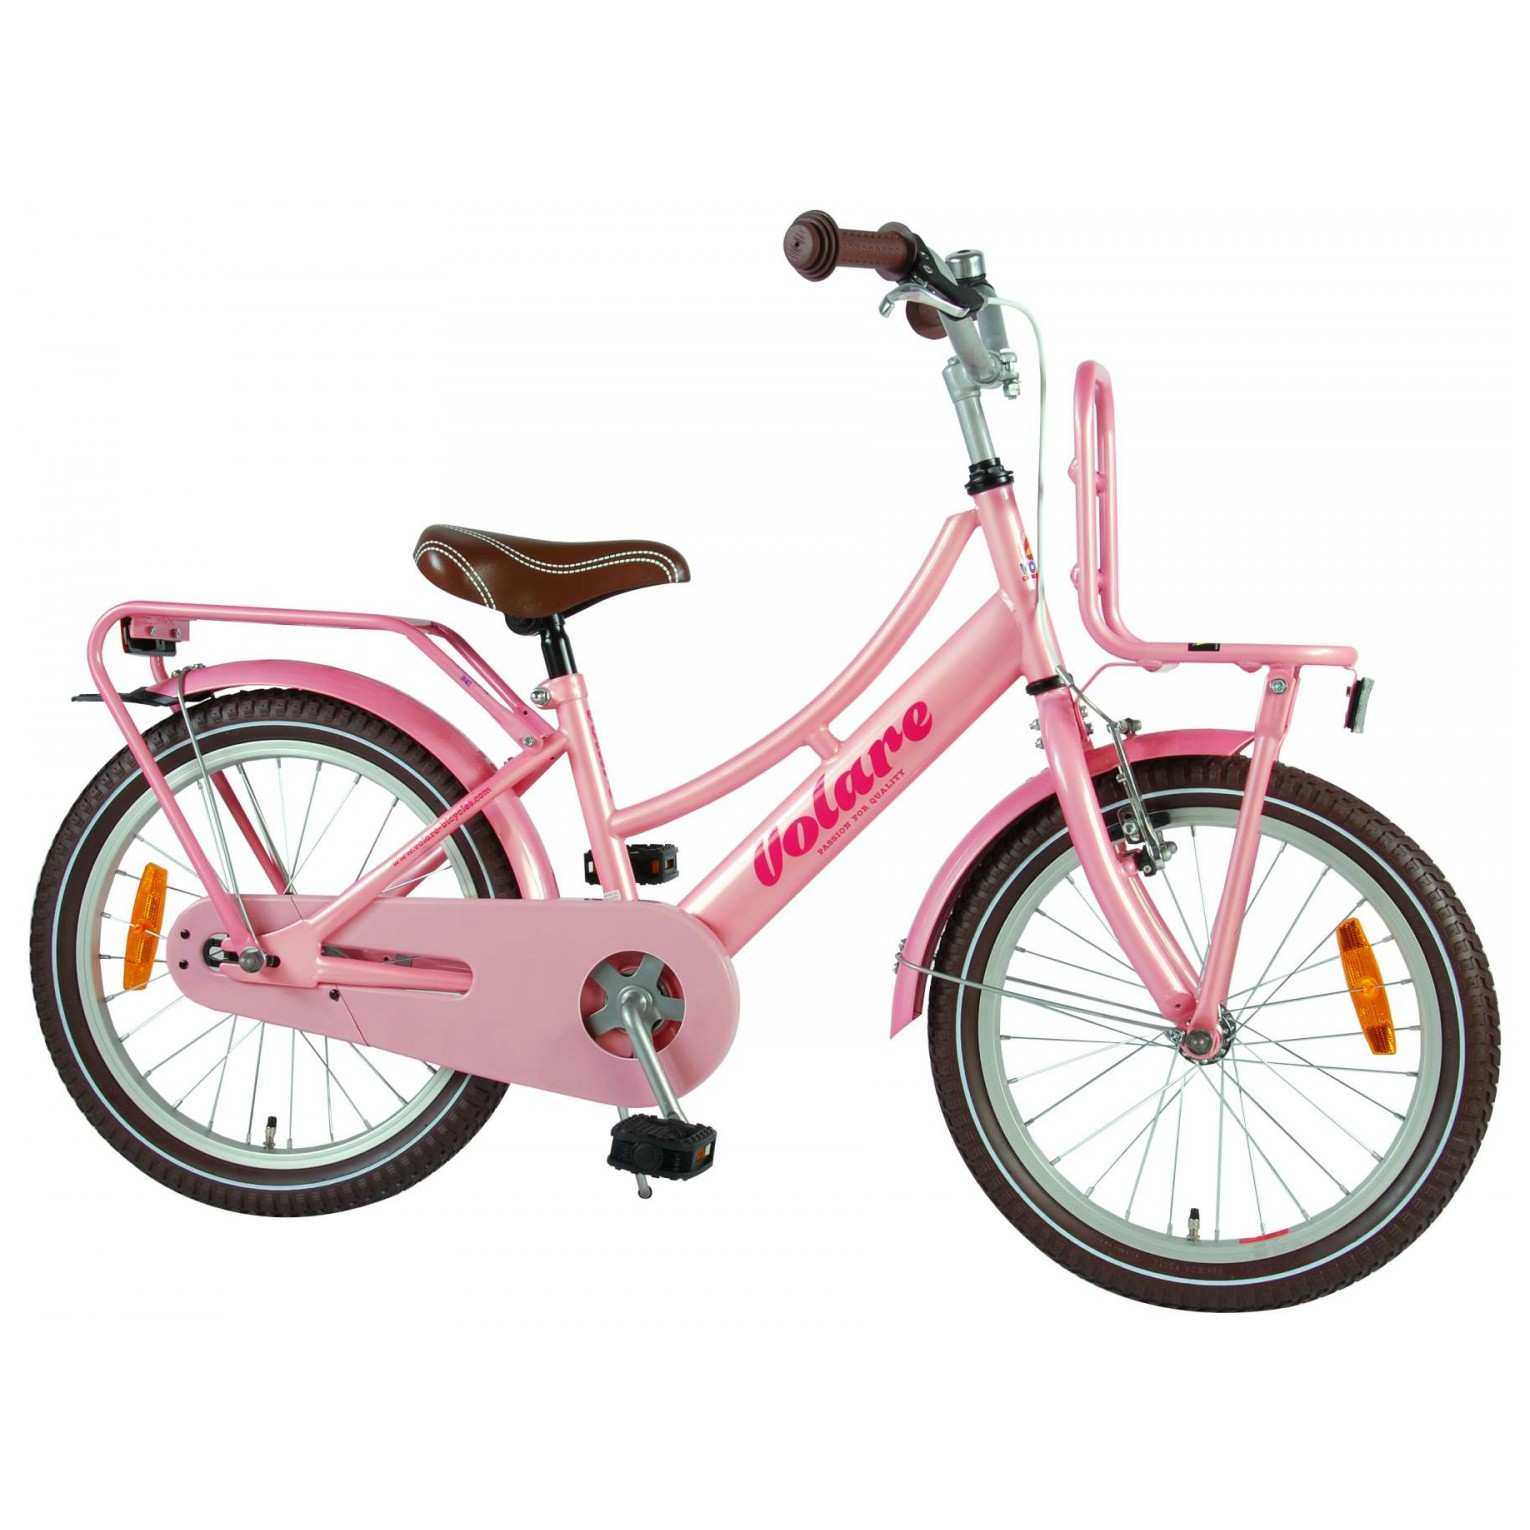 Volare Excellent Fiets -18 inch - Roze